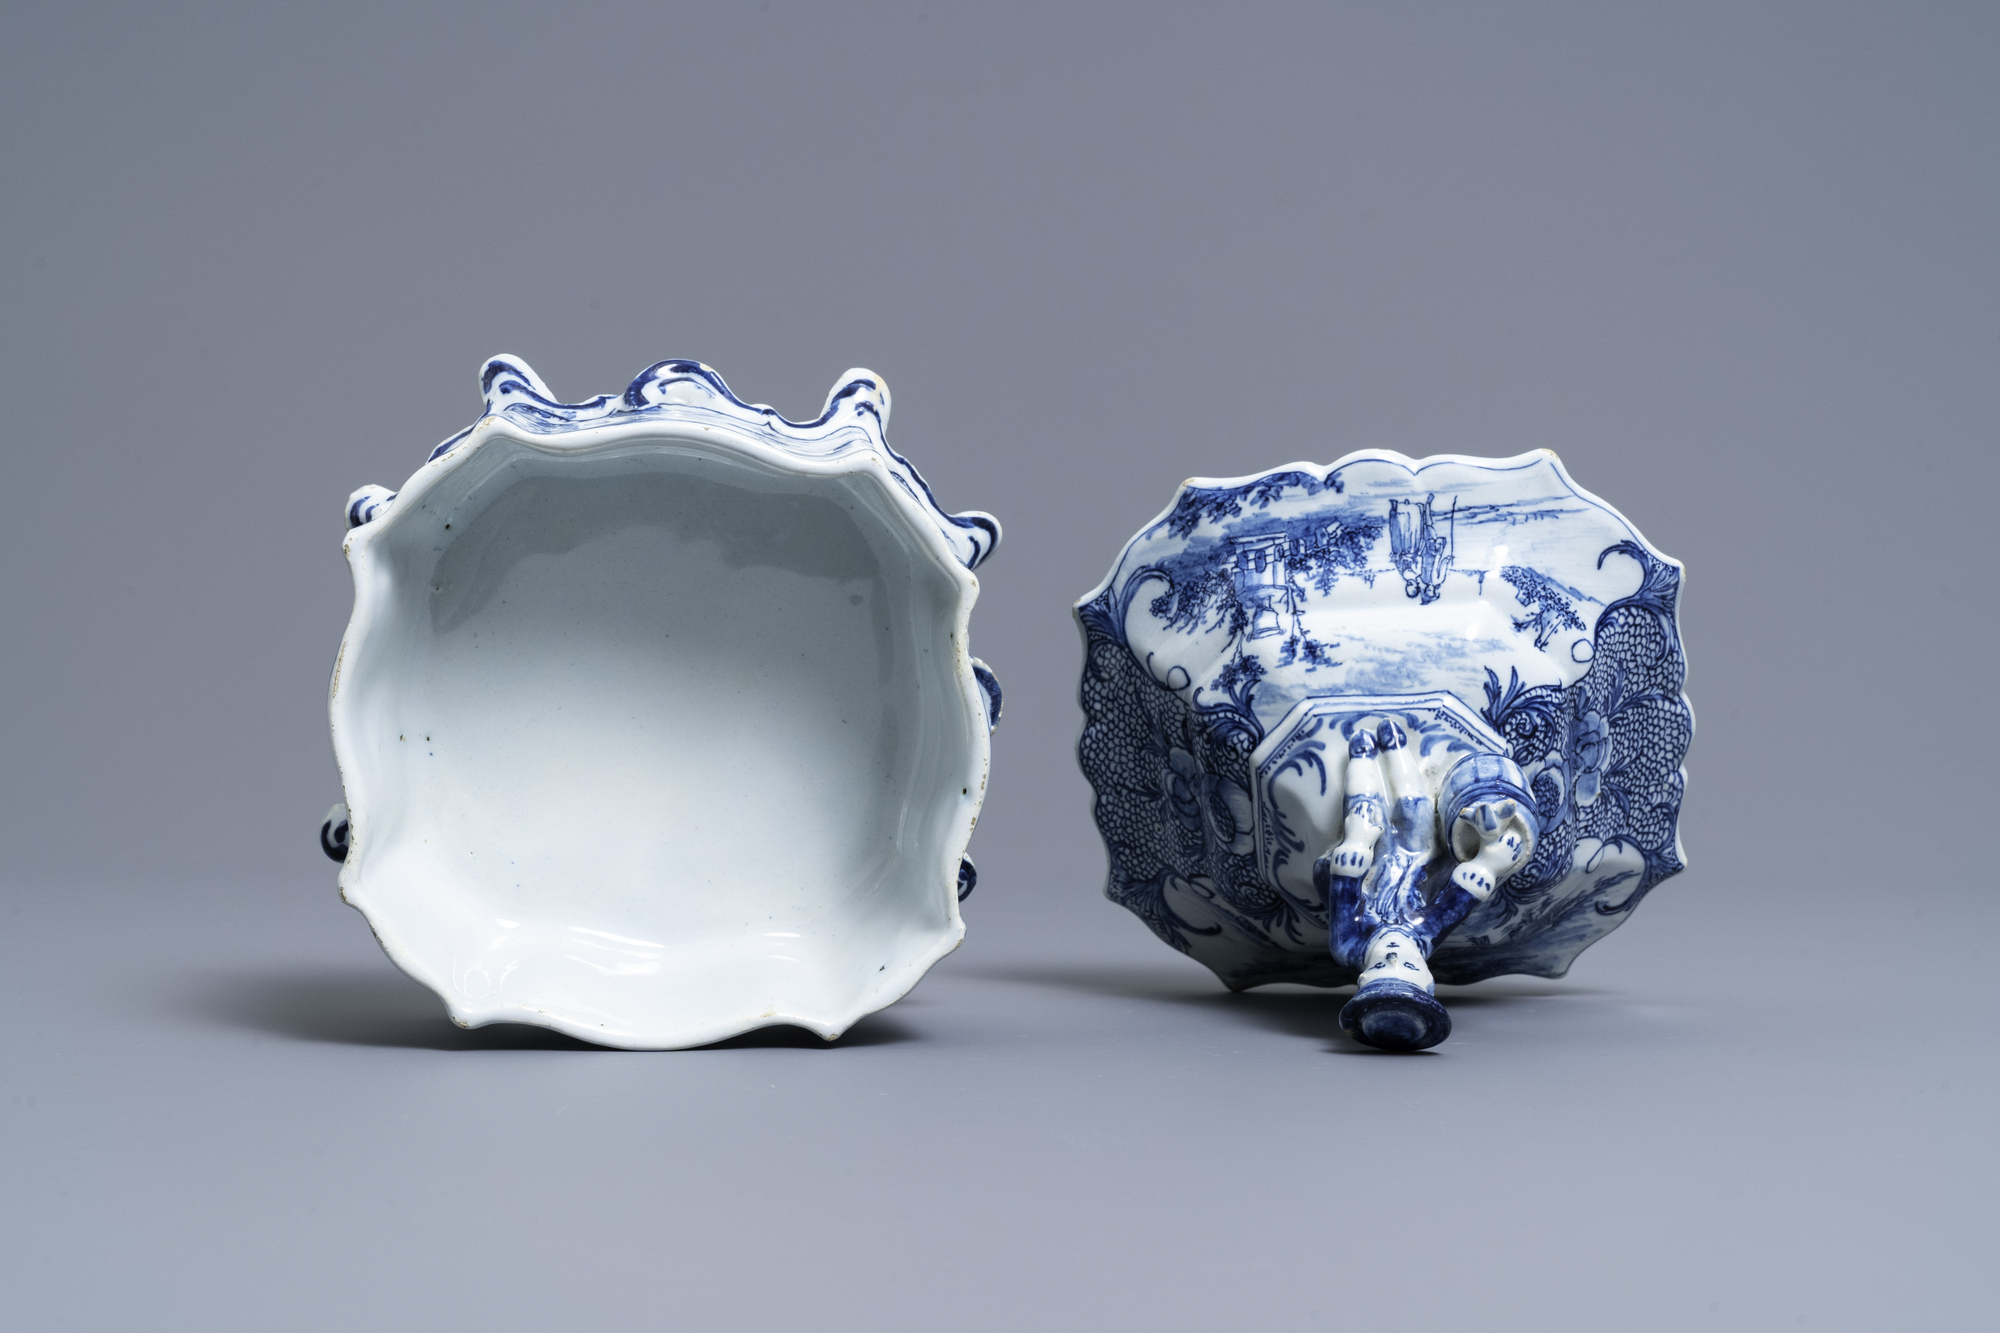 A Dutch Delft blue and white tobacco box and cover with a boy near a barrel, 18th C. - Image 5 of 7